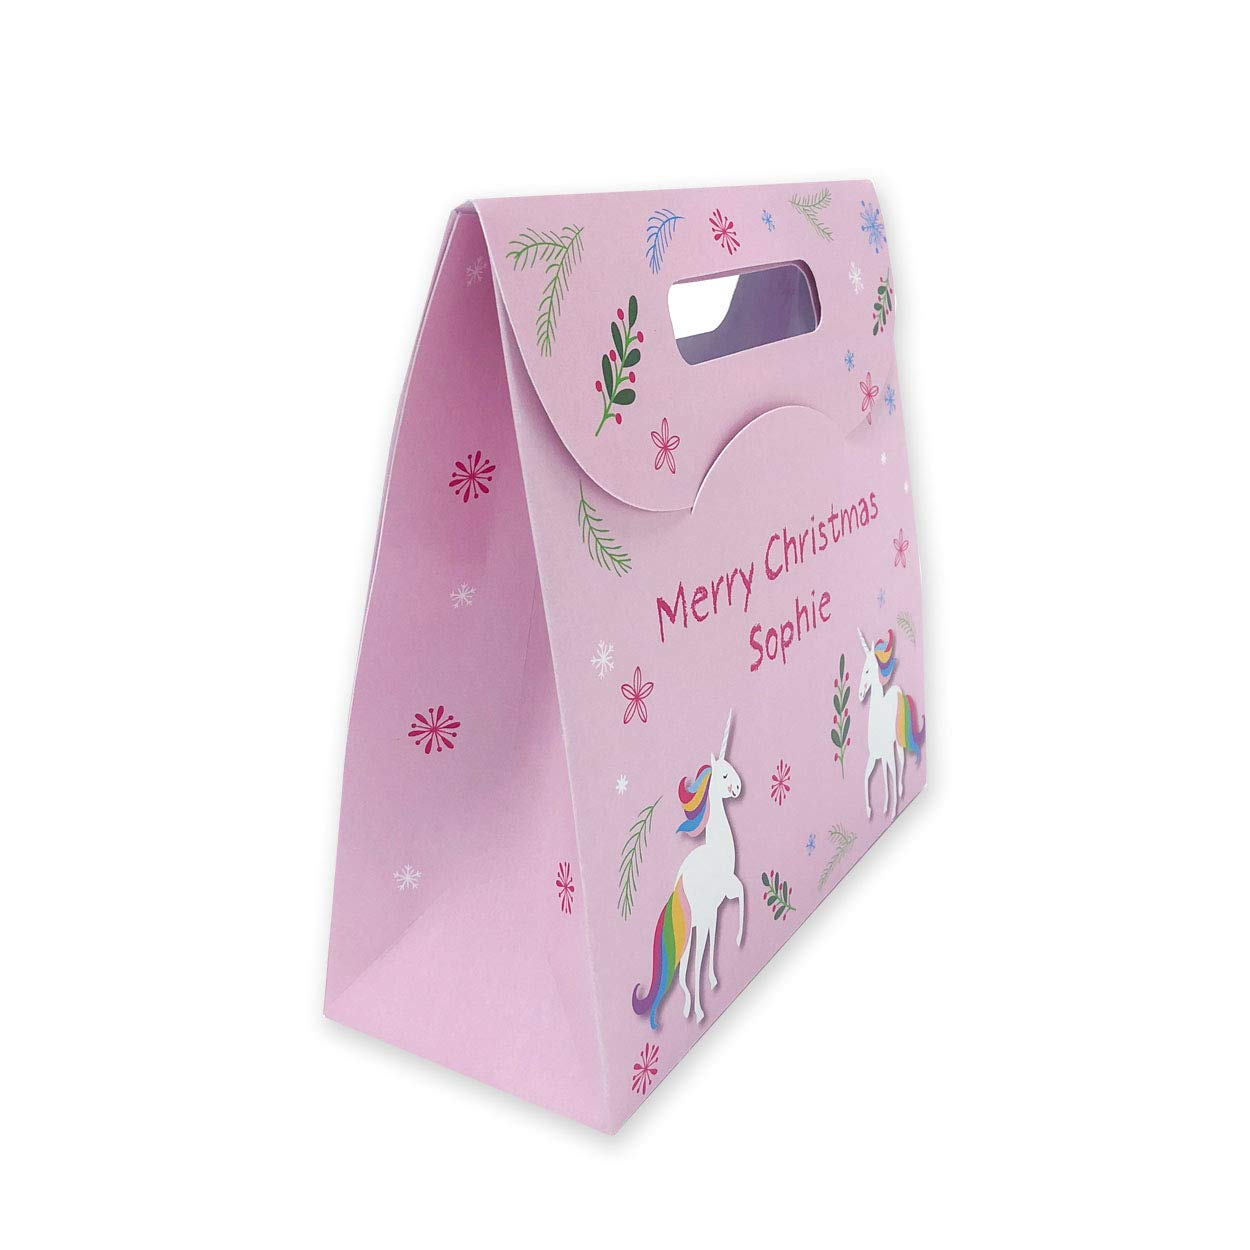 Personalised Christmas Gift Bag For Presents - Unicorn Theme